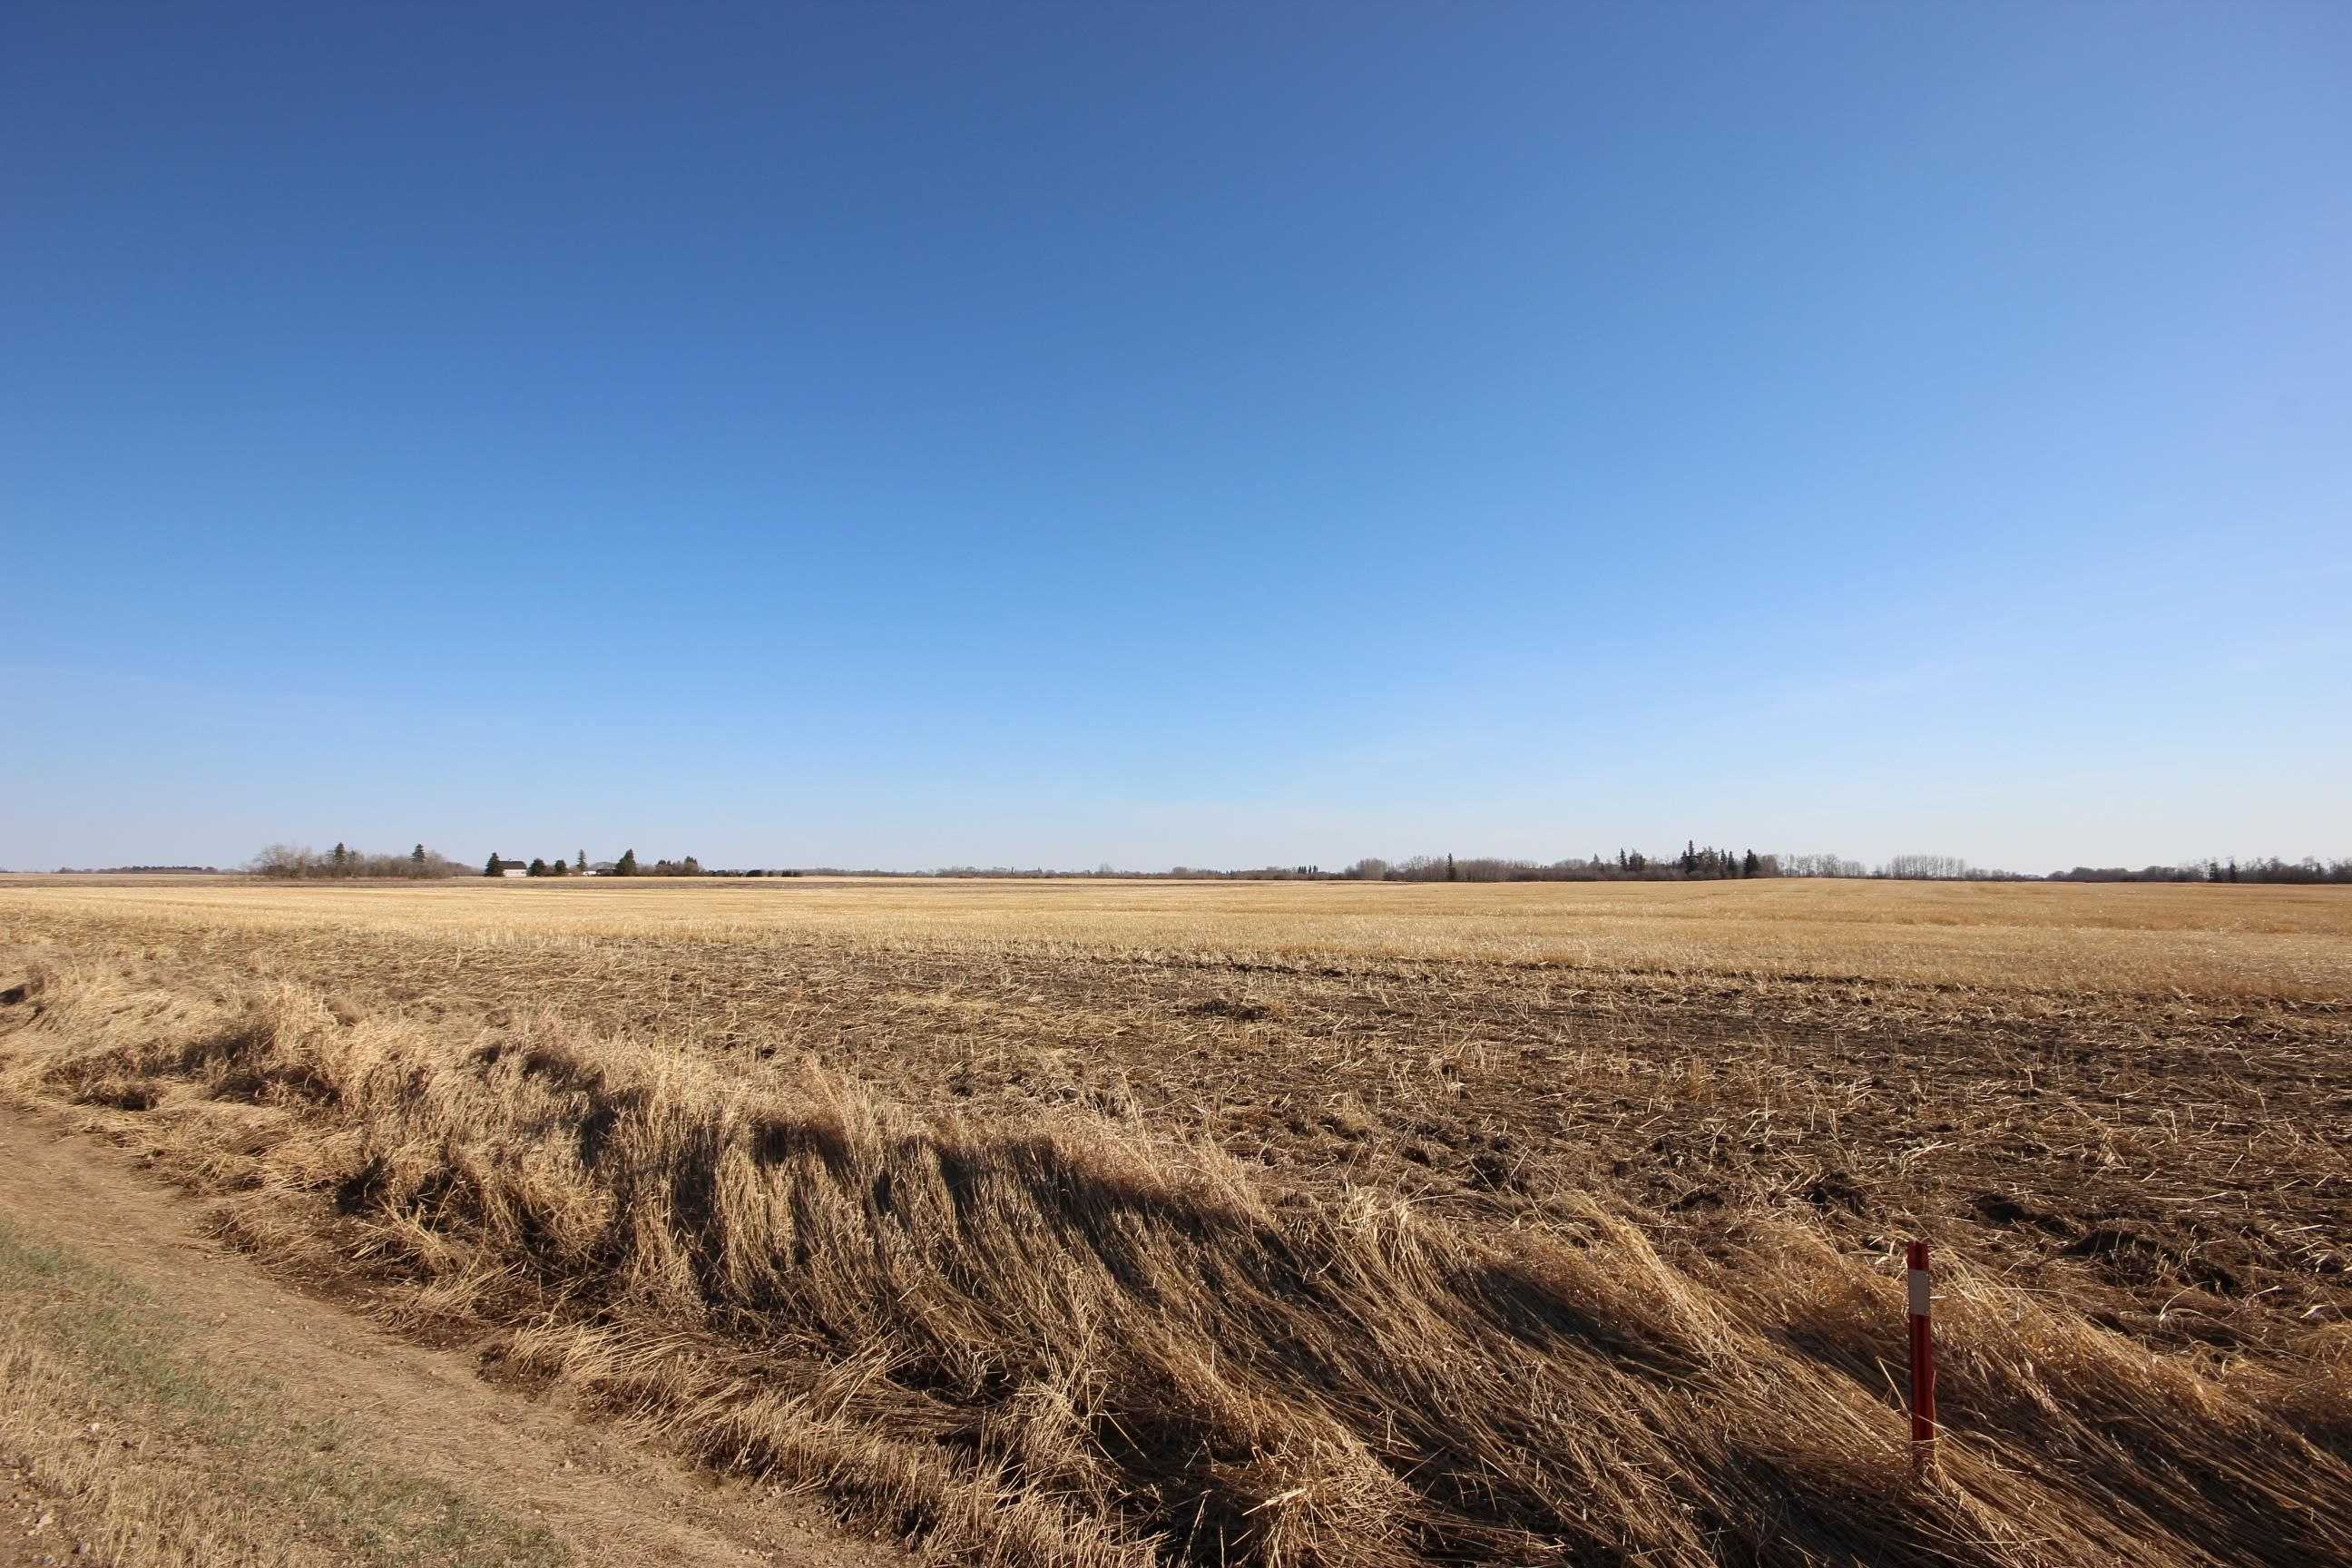 Main Photo: Lot 2 TWP 564 RR 250: Rural Sturgeon County Rural Land/Vacant Lot for sale : MLS®# E4265825